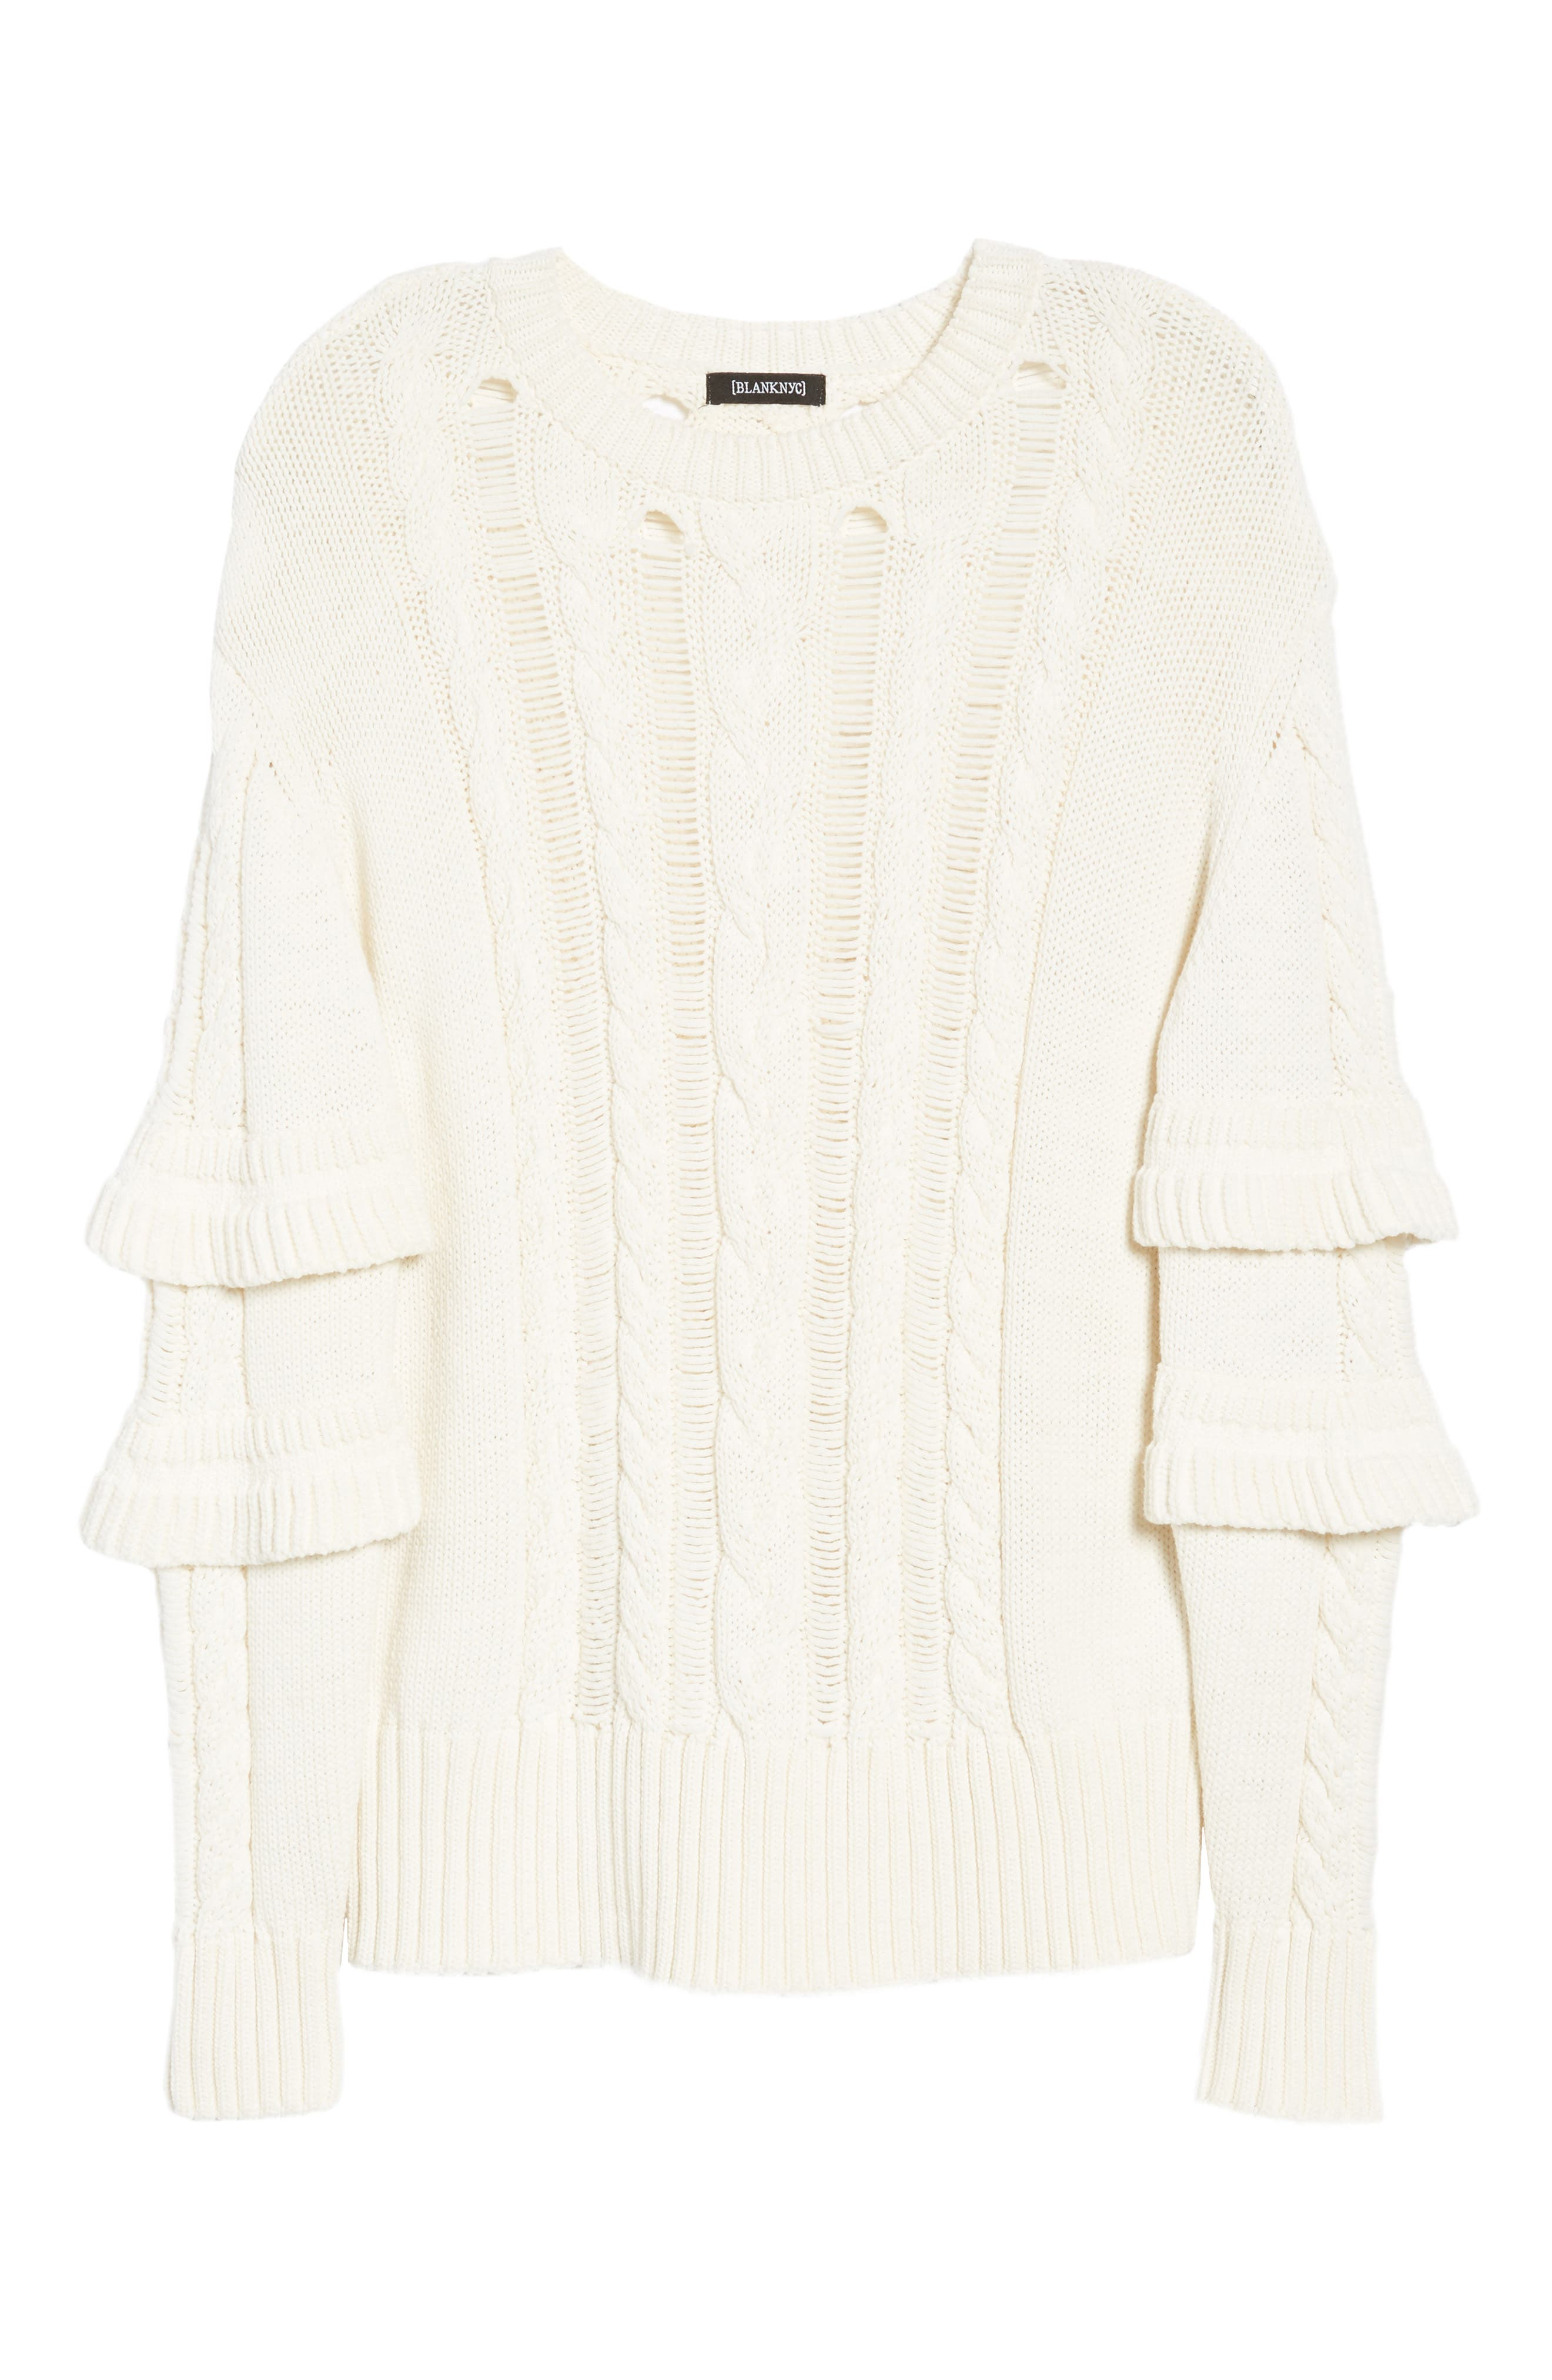 Ruffle Sleeve Cable Knit Sweater,                             Alternate thumbnail 6, color,                             901